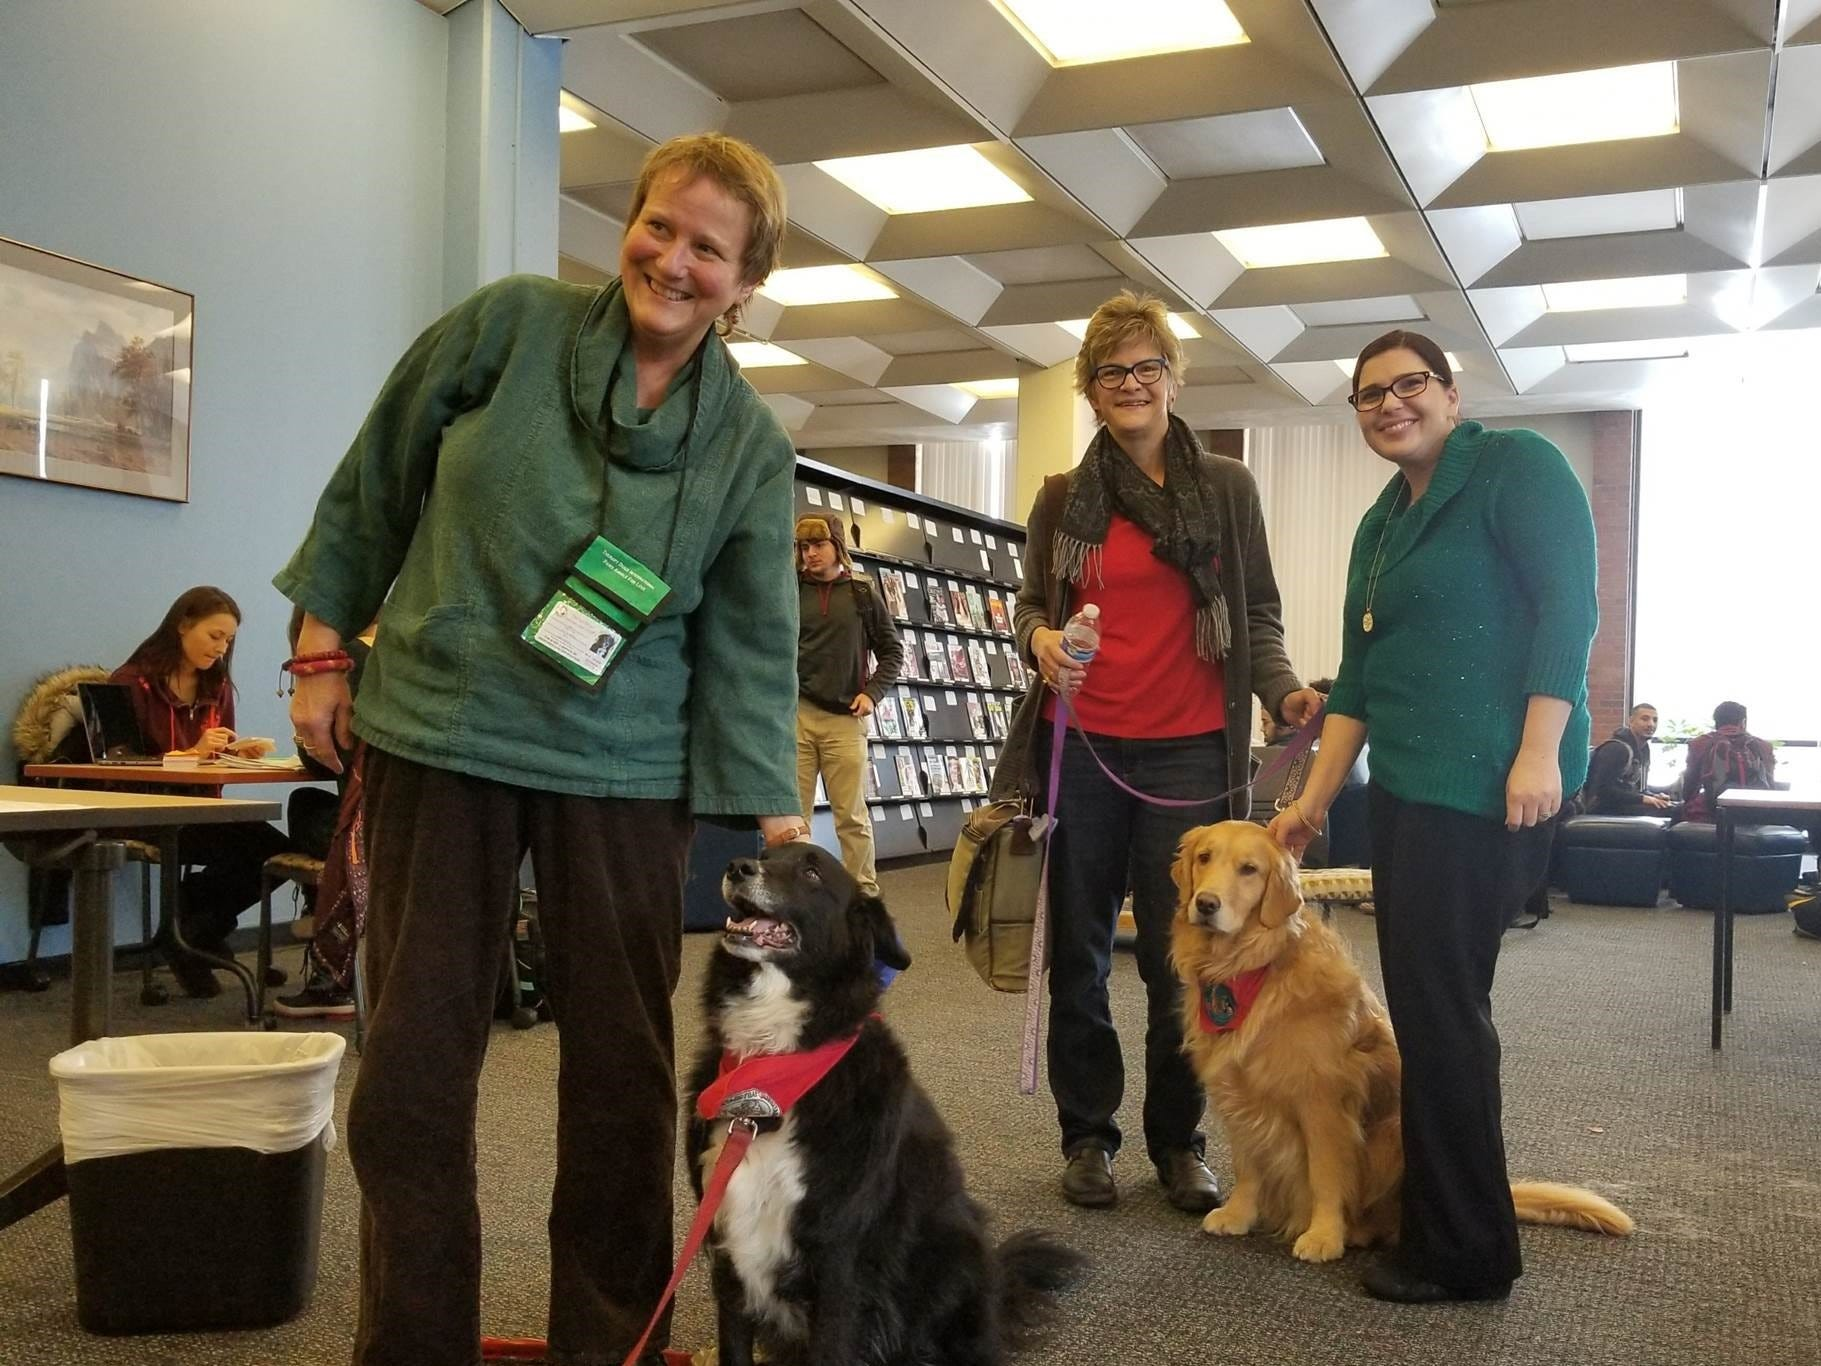 At left, Ann Tippett, a professor at Monroe Community College stands with her certified therapy dog, Milli. At center, Kathleen O'Shea, also a professor at MCC, stands with her certified therapy dog, Gretta. The dogs make trips to places like the library at MCC to spend time with students and help provide comfort and alleviate stress.